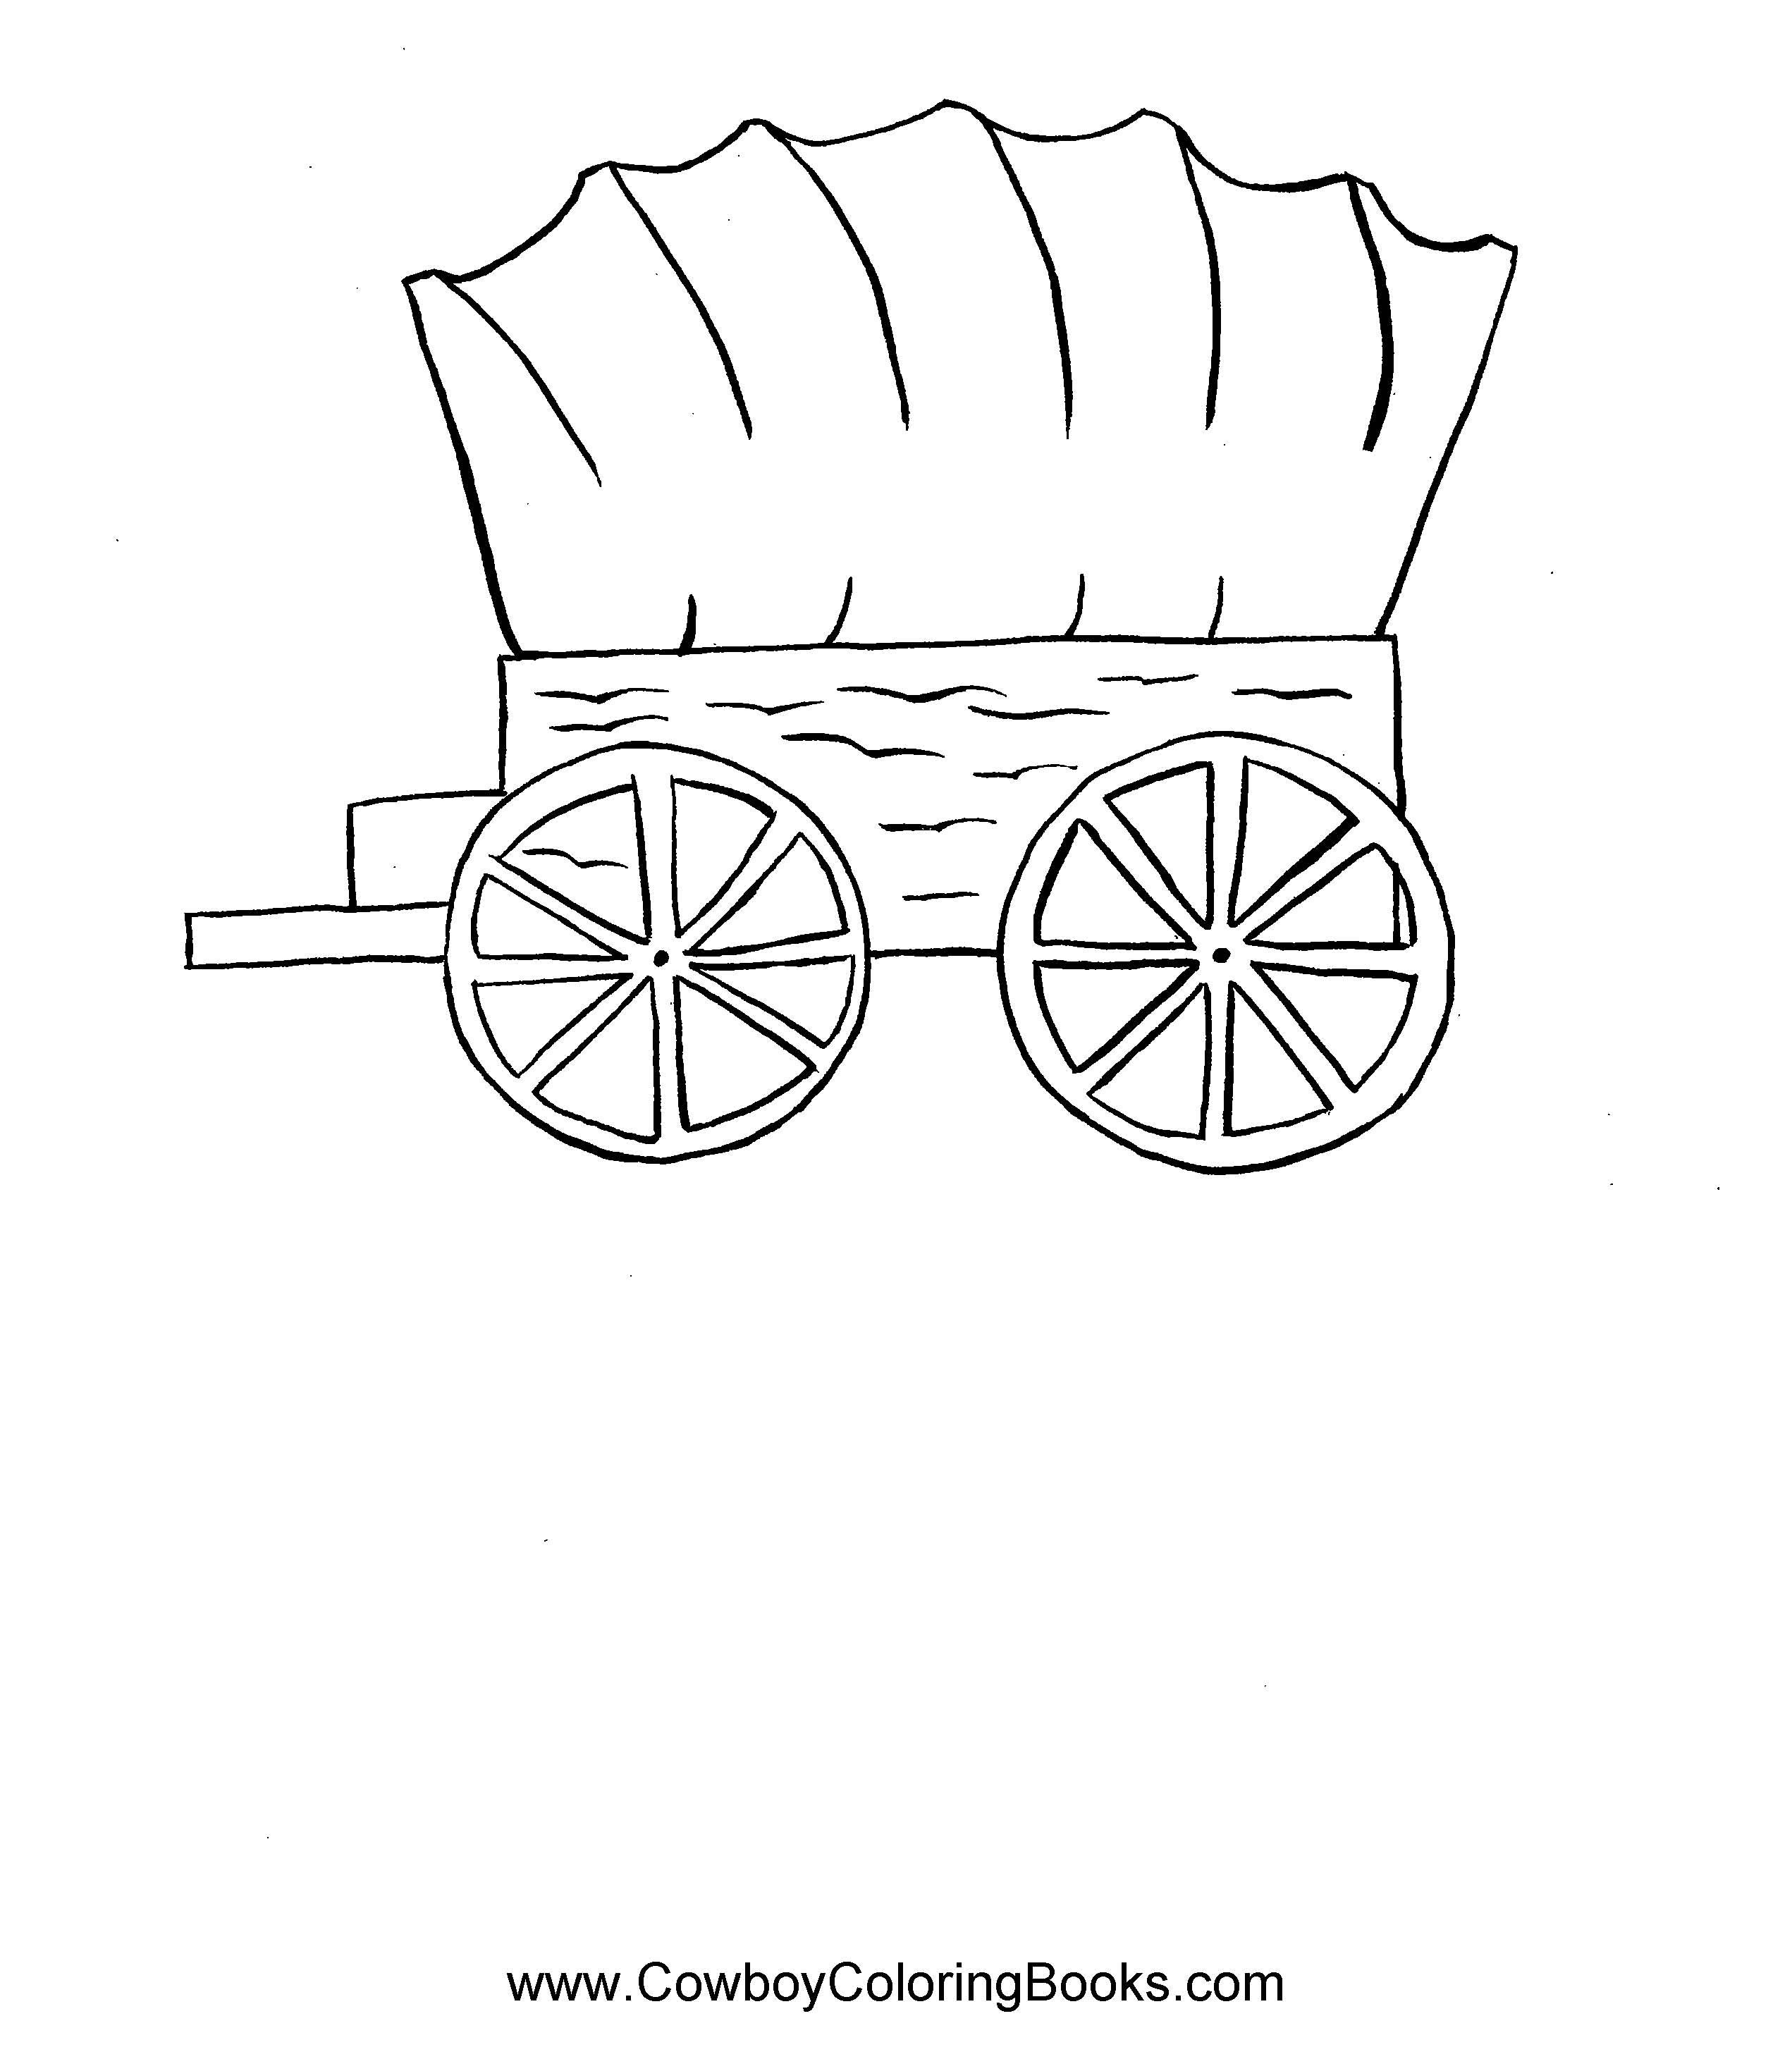 wagon trains coloring pages - photo#46